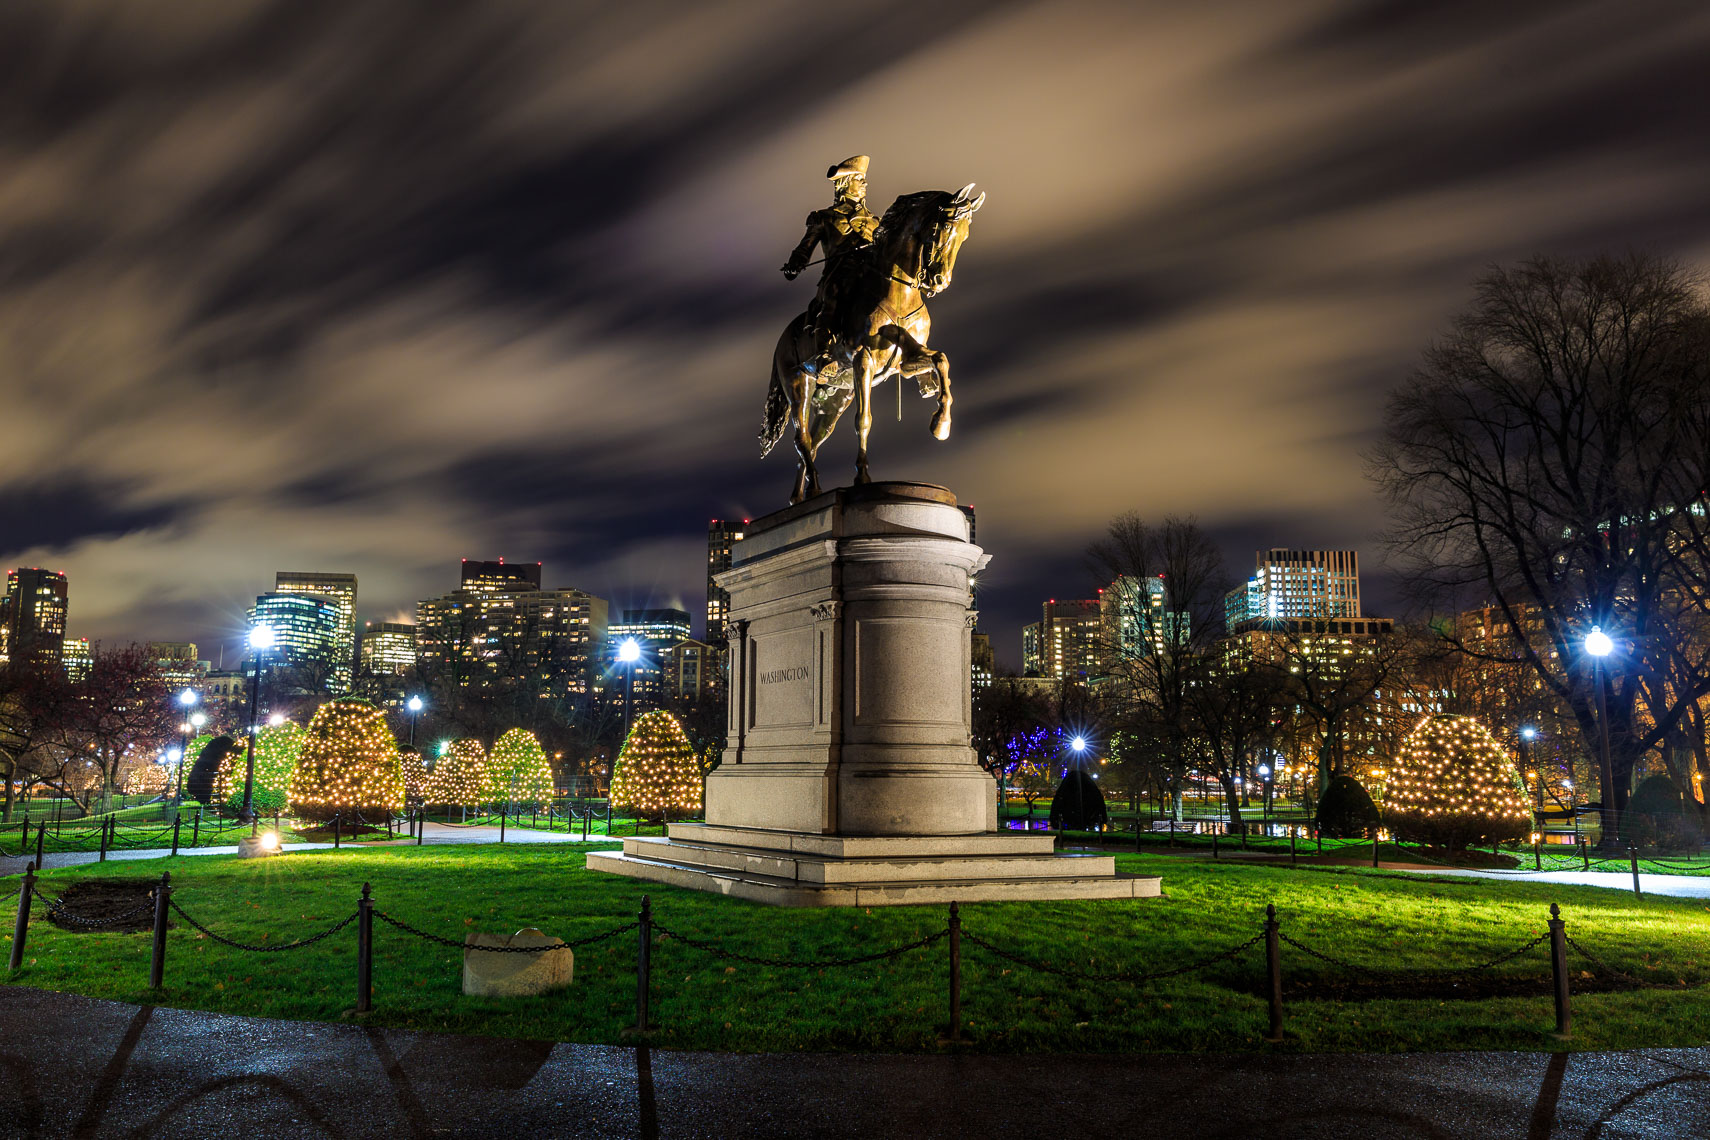 George Washington Statue in Boston